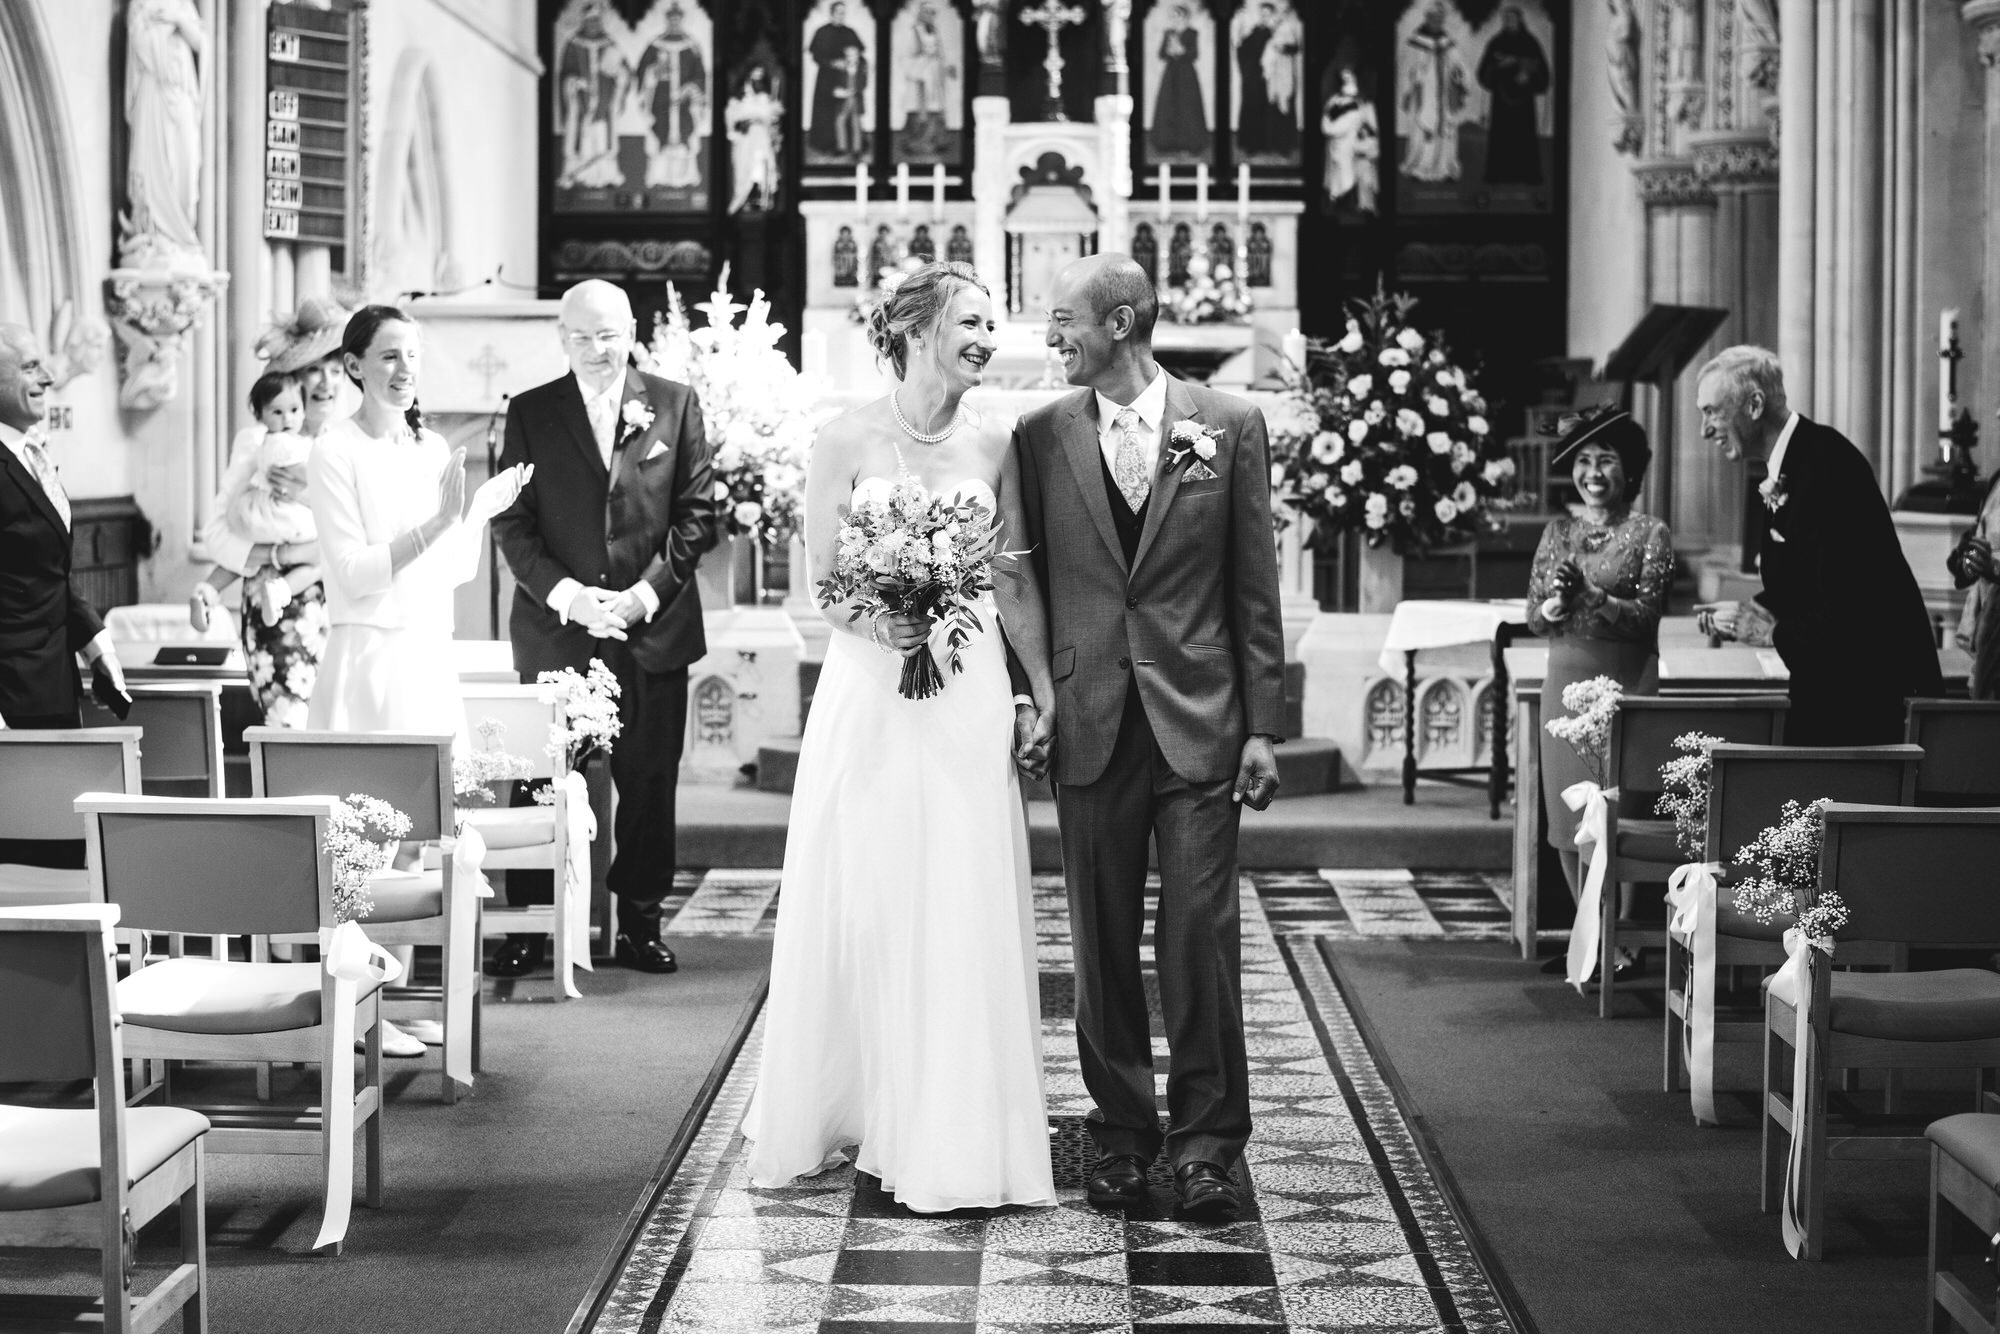 intimate church wedding during covid-19